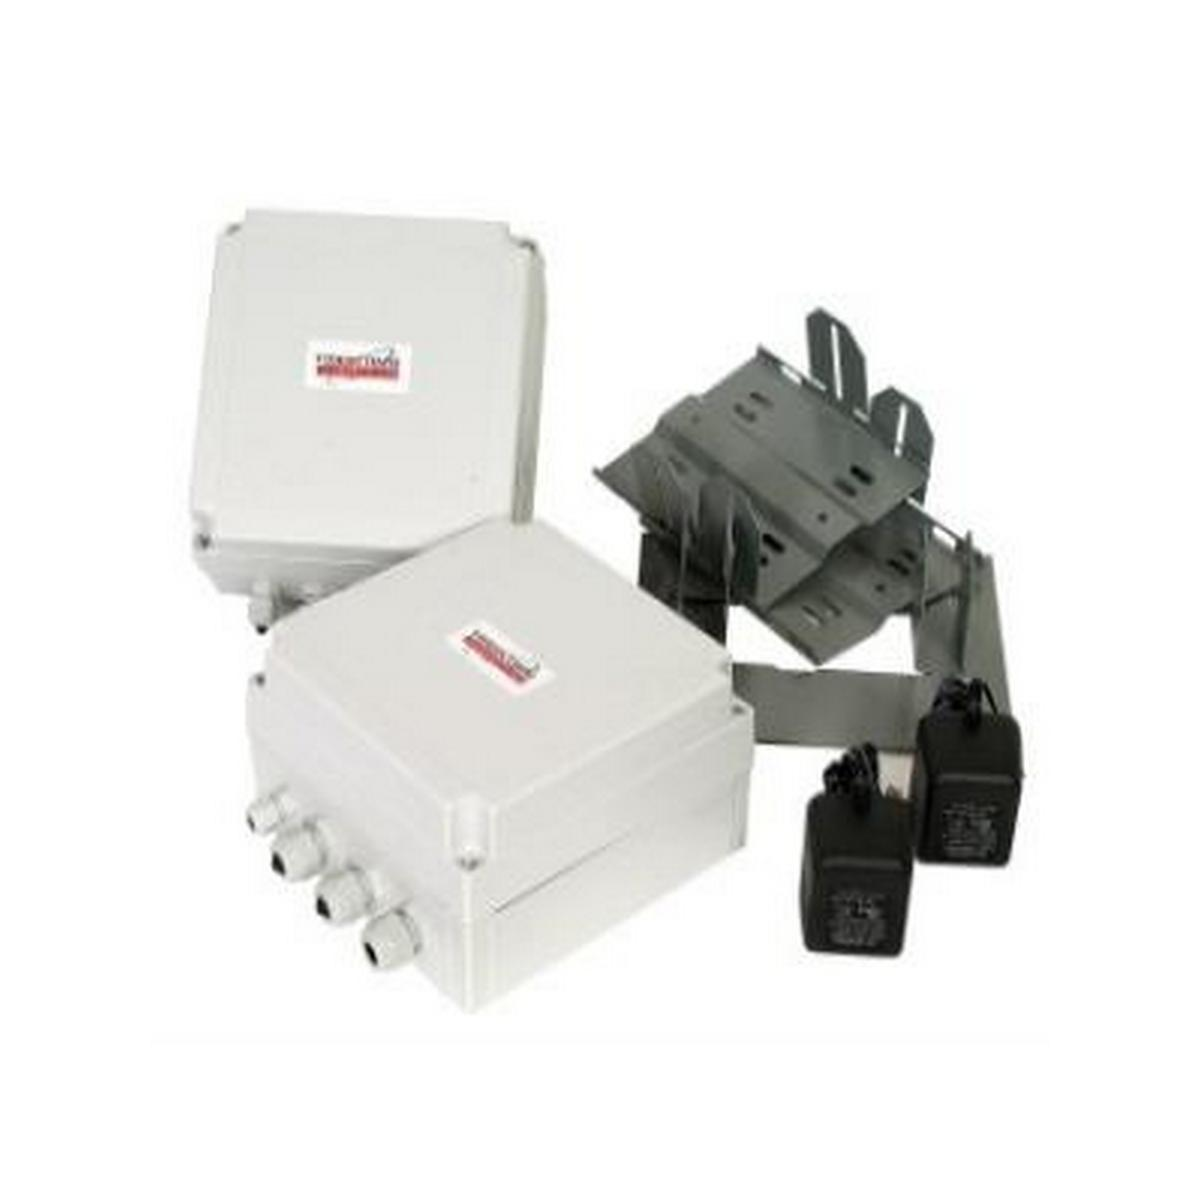 Videocomm Technologies TCO-5808R6   5.8Ghz Wireless transmitter/receiver kit,, all weather, to 2000ft